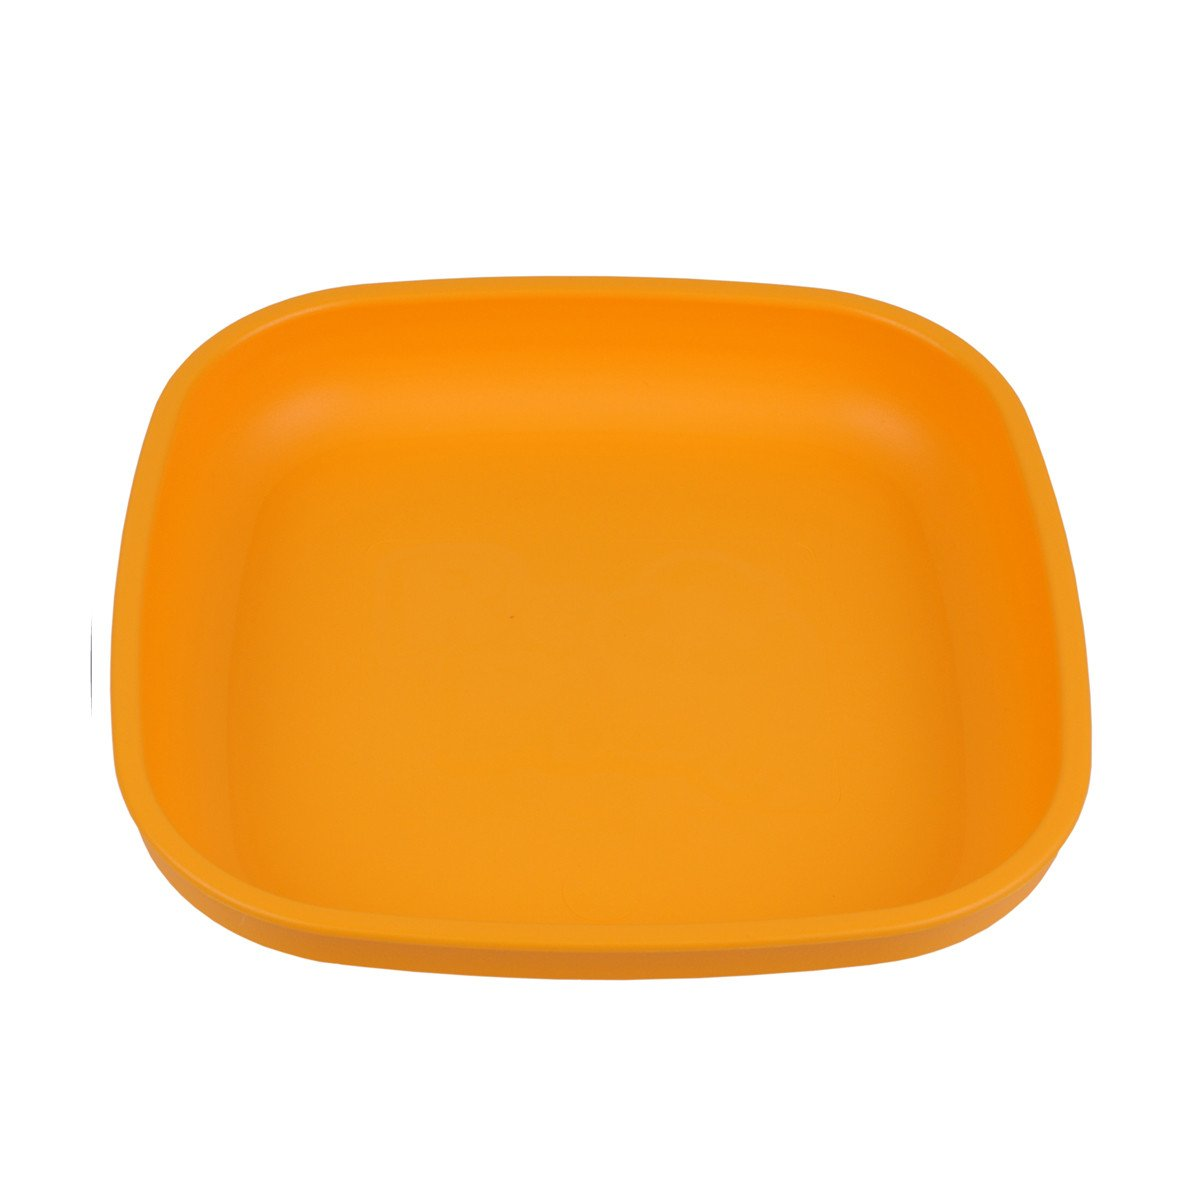 Replay Plate Replay Dinnerware Sunny Yellow at Little Earth Nest Eco Shop